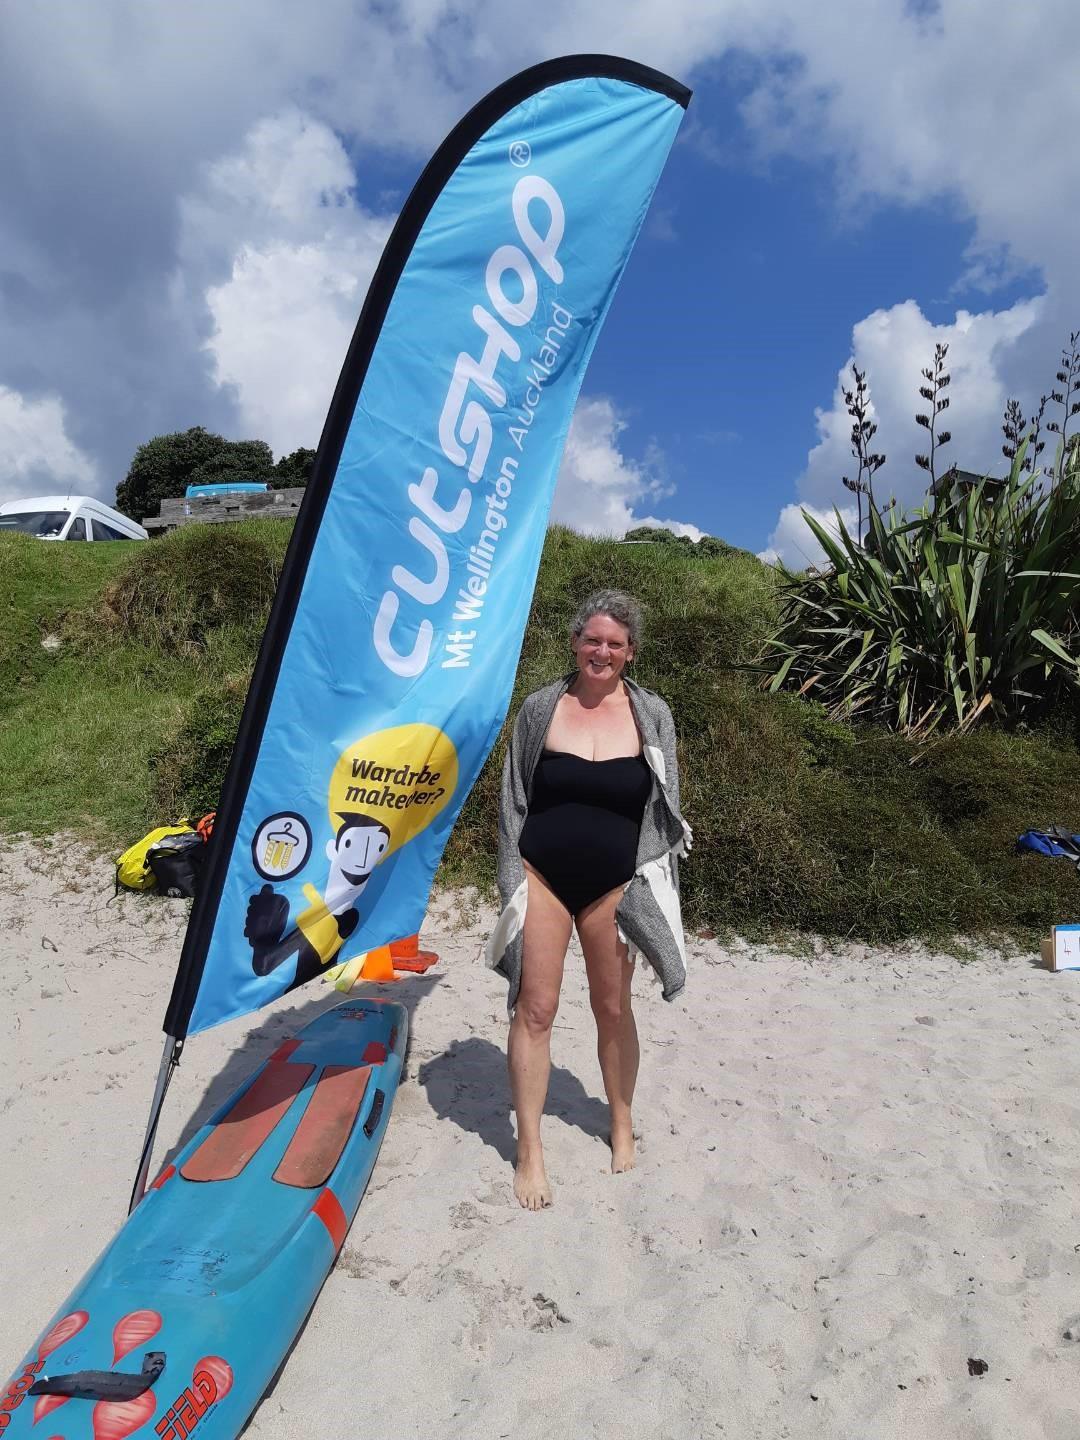 In a cool coincidence, this Cathedral Cove swimmer, Esther, just had a kitchen unit cut with Cutshop.